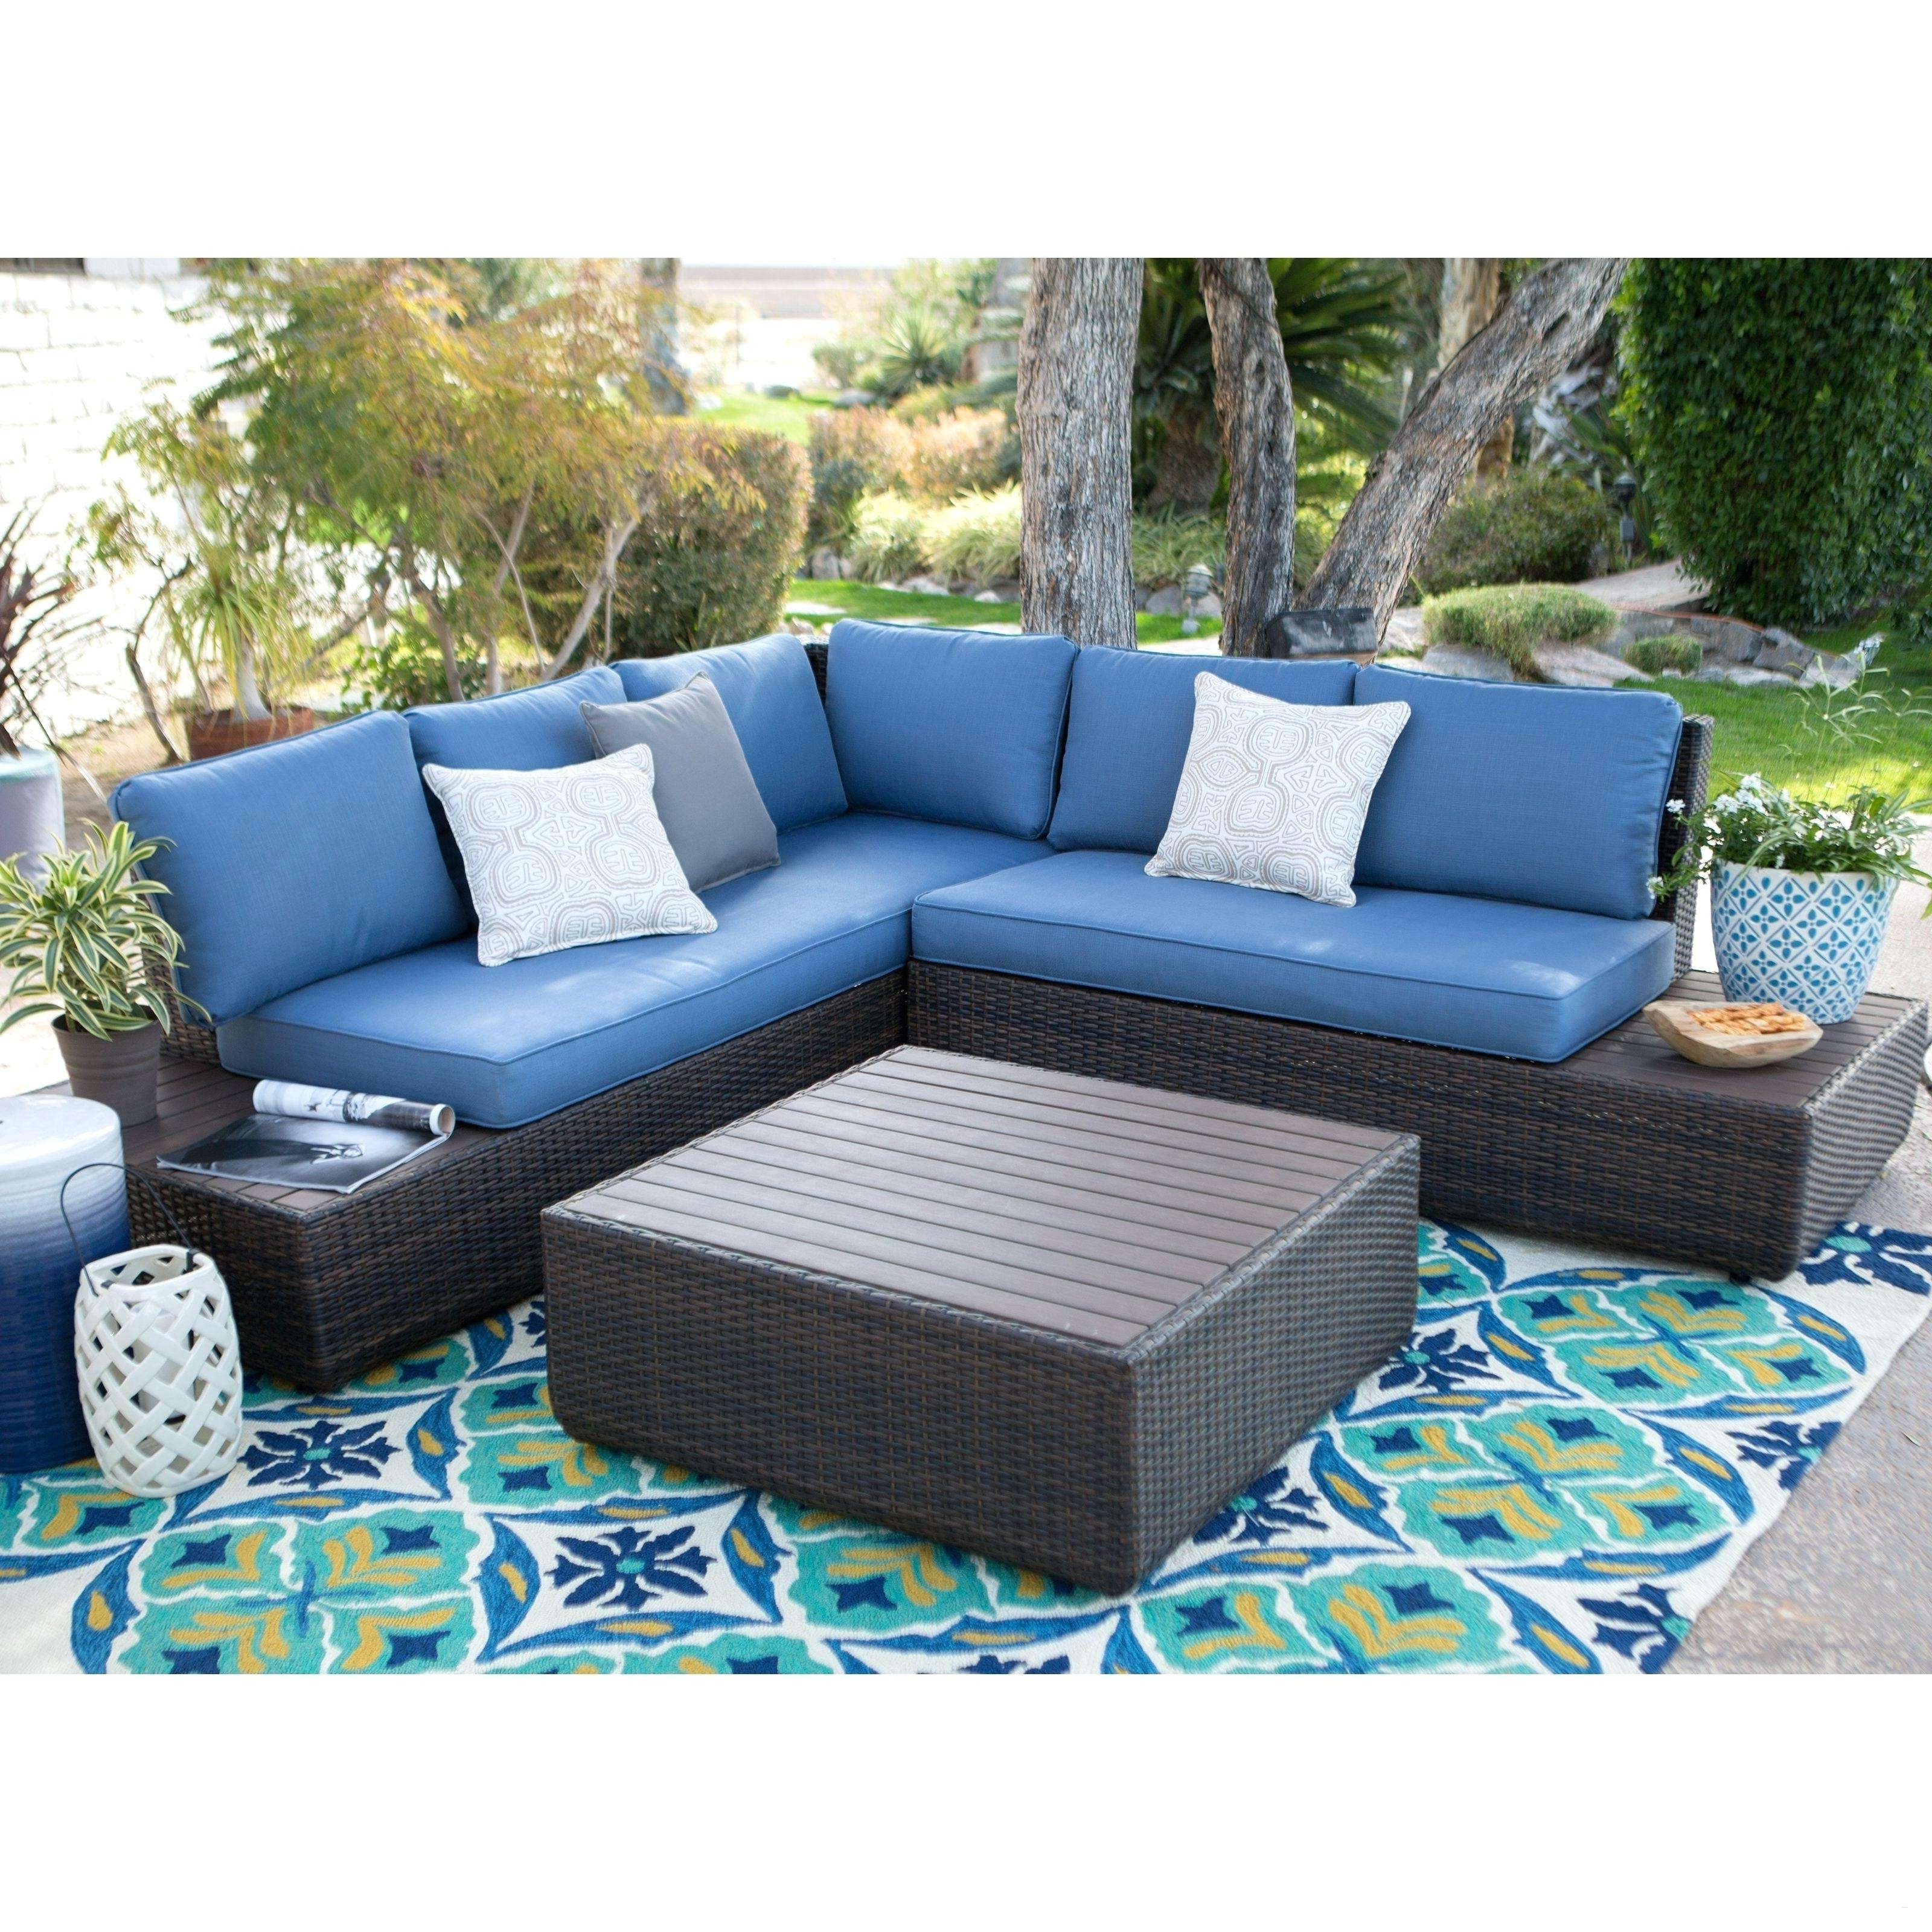 30 Fresh Pier 1 Outdoor Furniture Design – Jsmorganicsfarm In Widely Used Pier One Patio Conversation Sets (View 2 of 20)